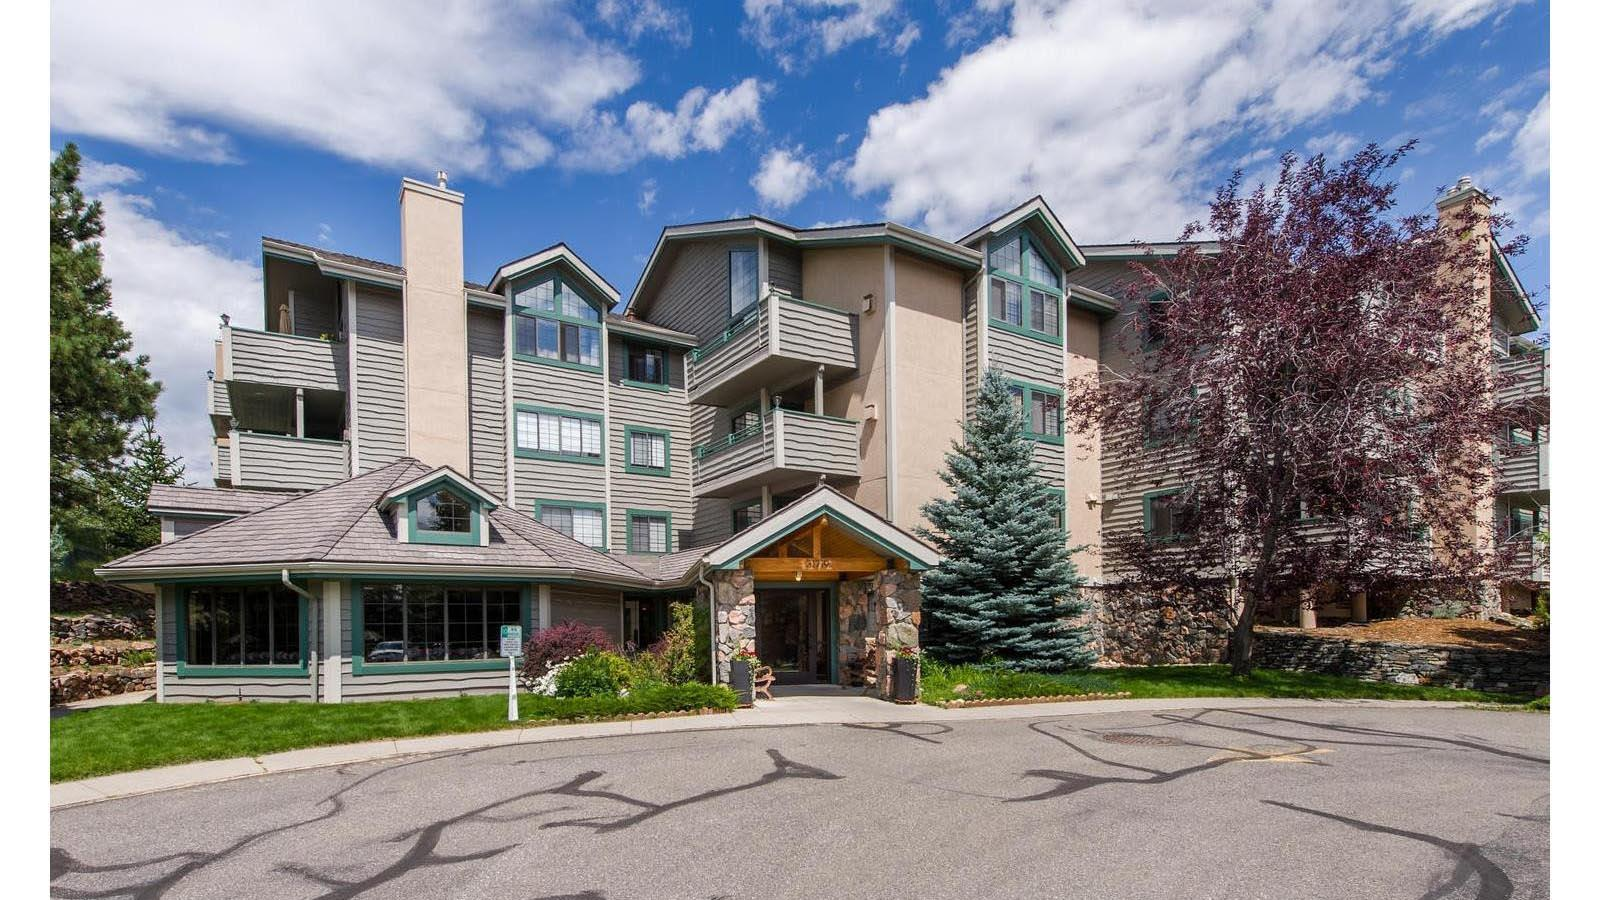 Single Family for Active at 31719 Rocky Village Dr Apt 115 31719 Rocky Village Dr Apt 115 Evergreen, Colorado 80439 United States